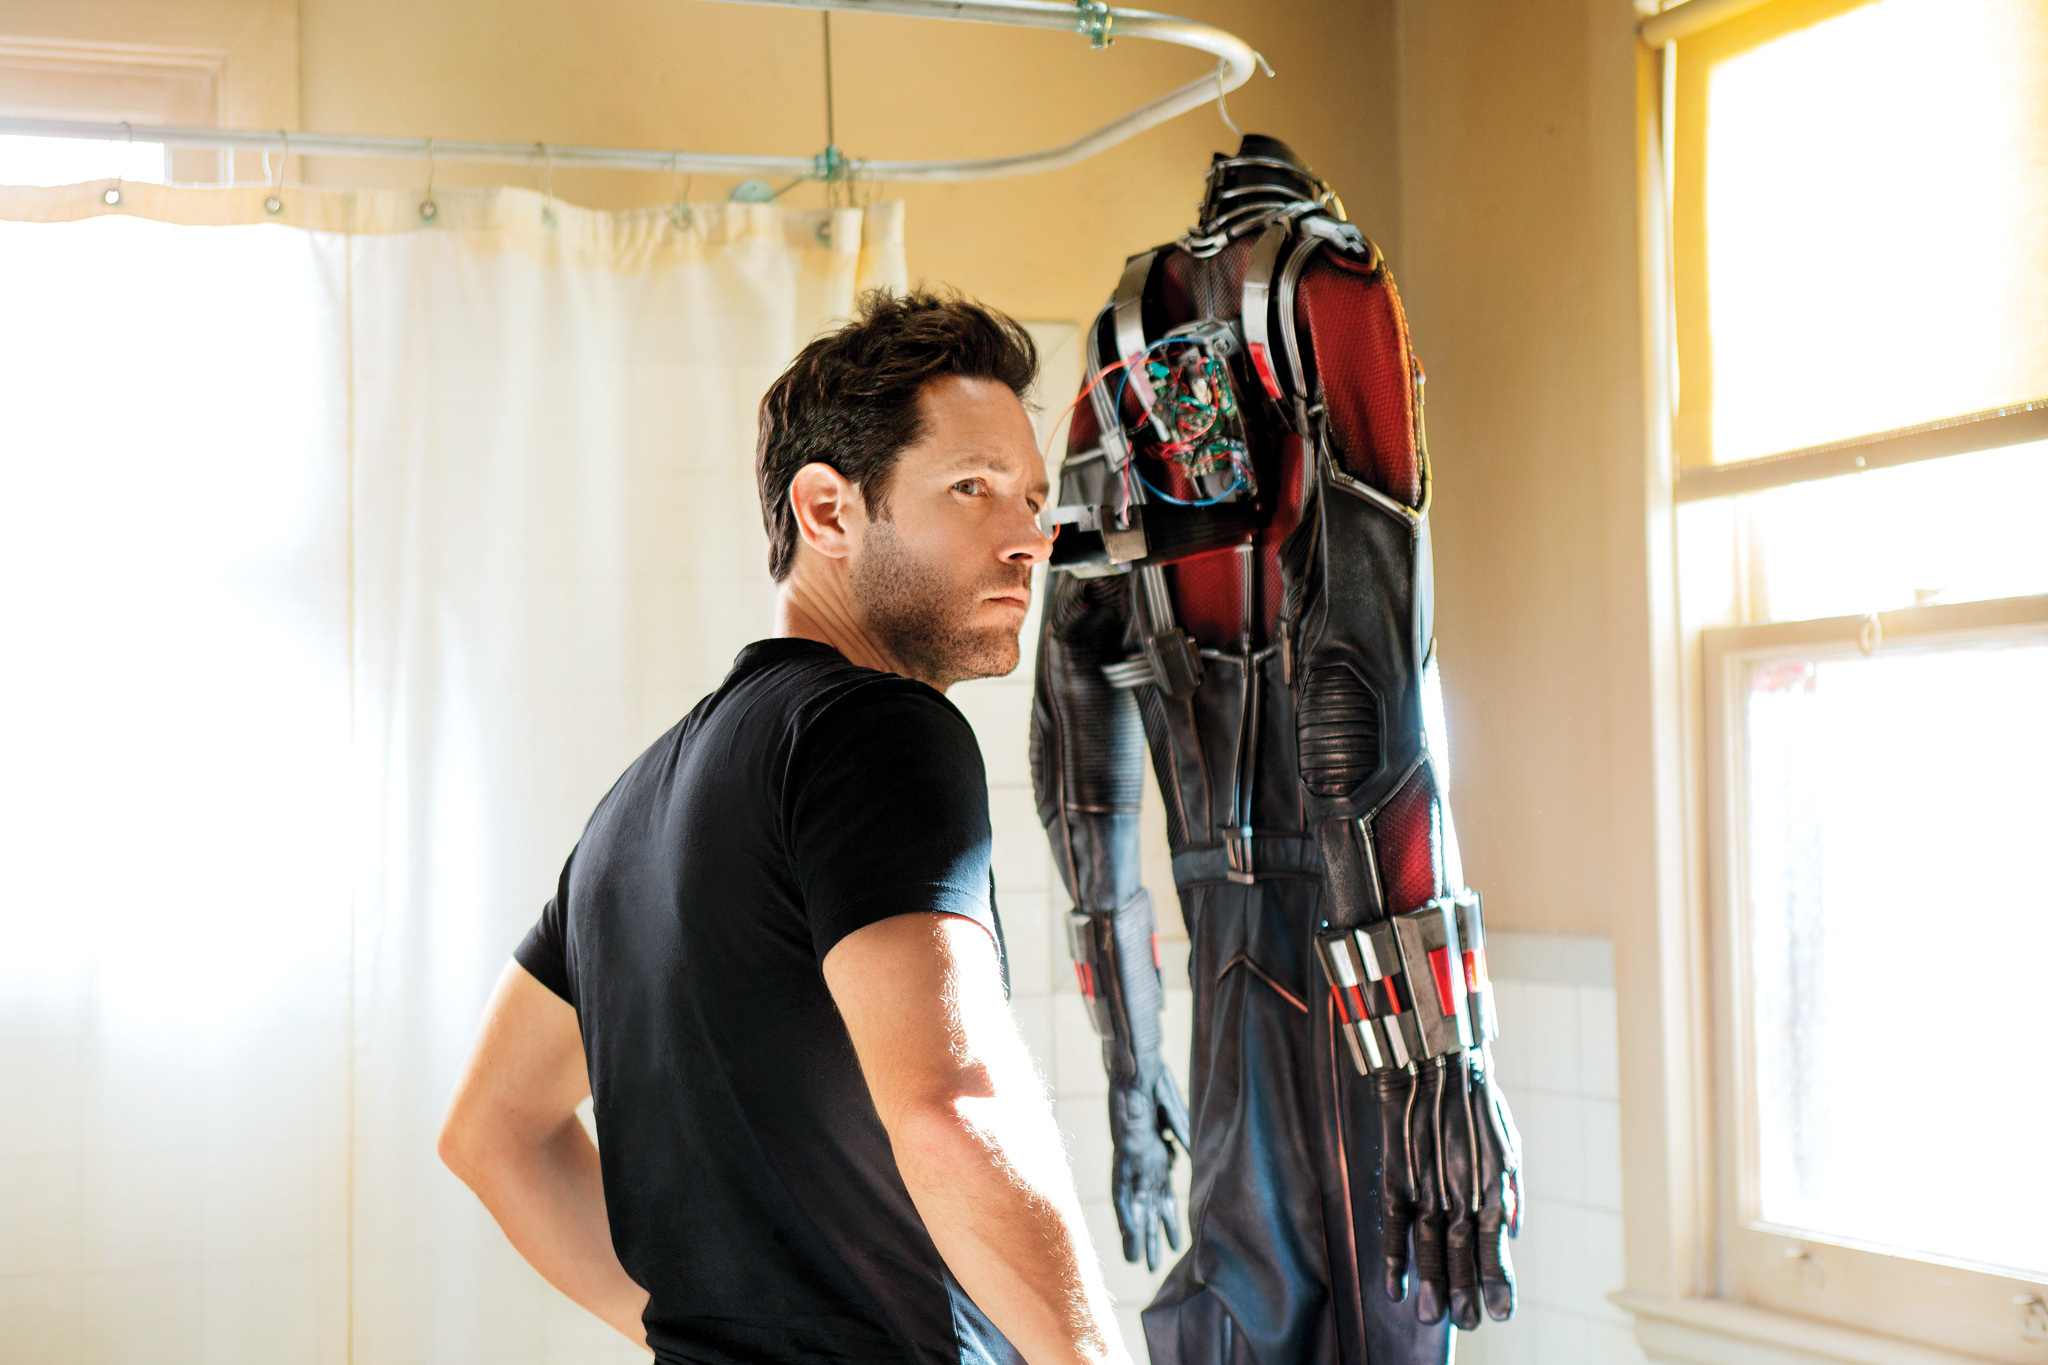 Paul Rudd getting ready to suit up as Ant-Man